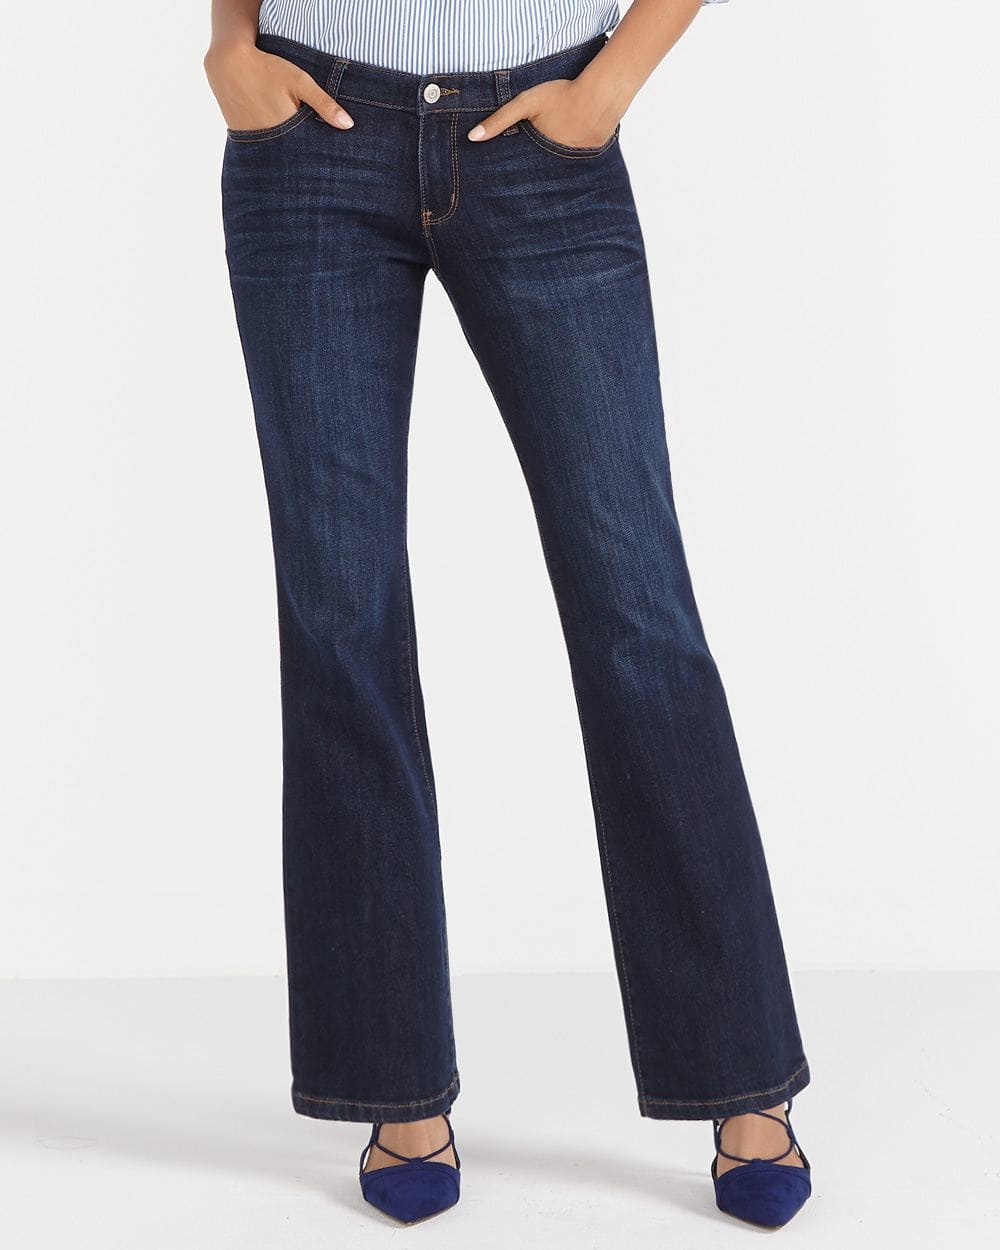 The Petite Insider Boot Cut Jeans